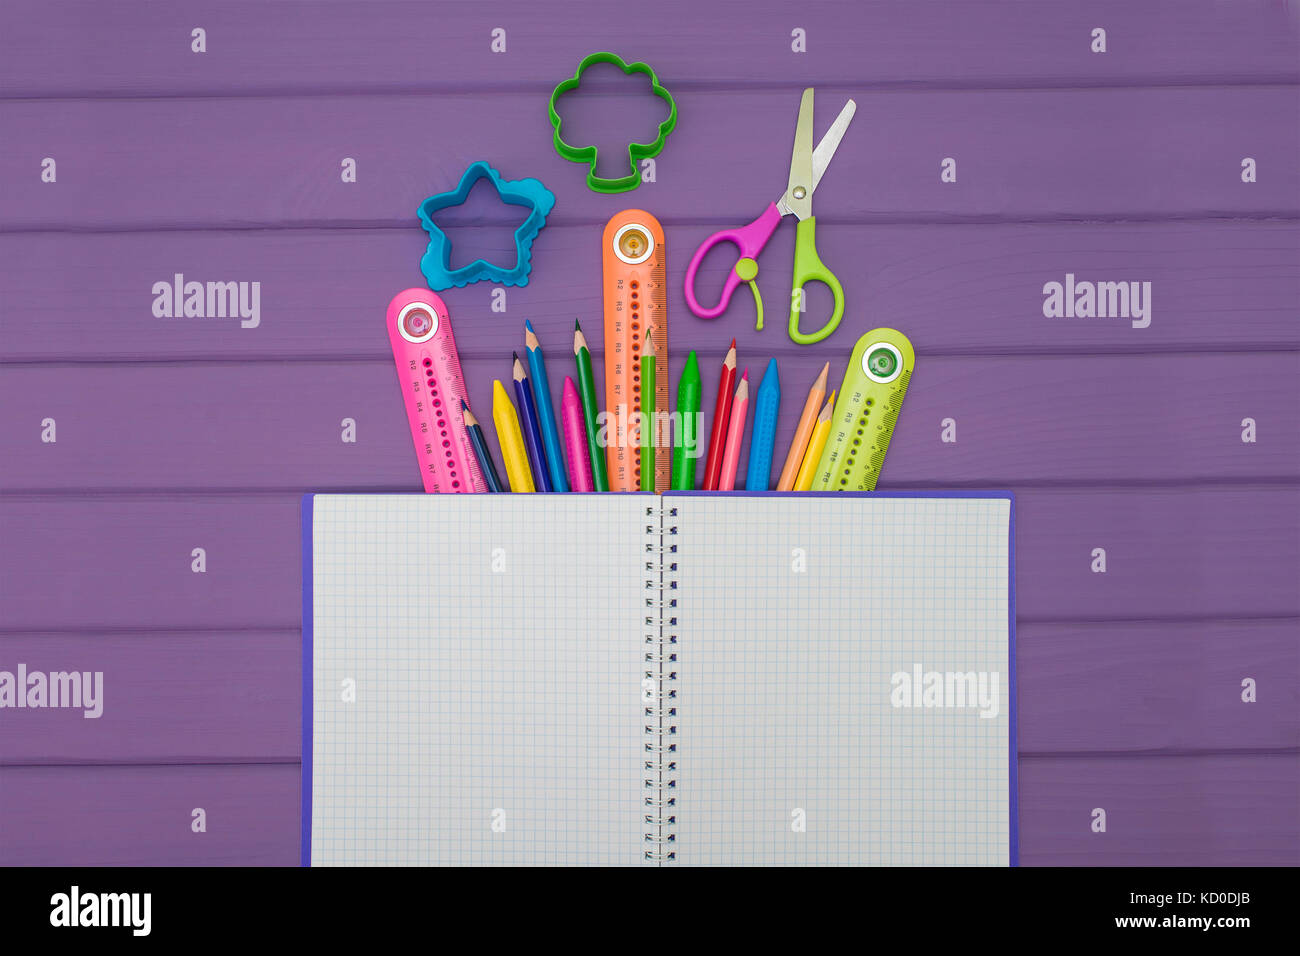 A notebook with colored pencils, rulers and scissors - Stock Image